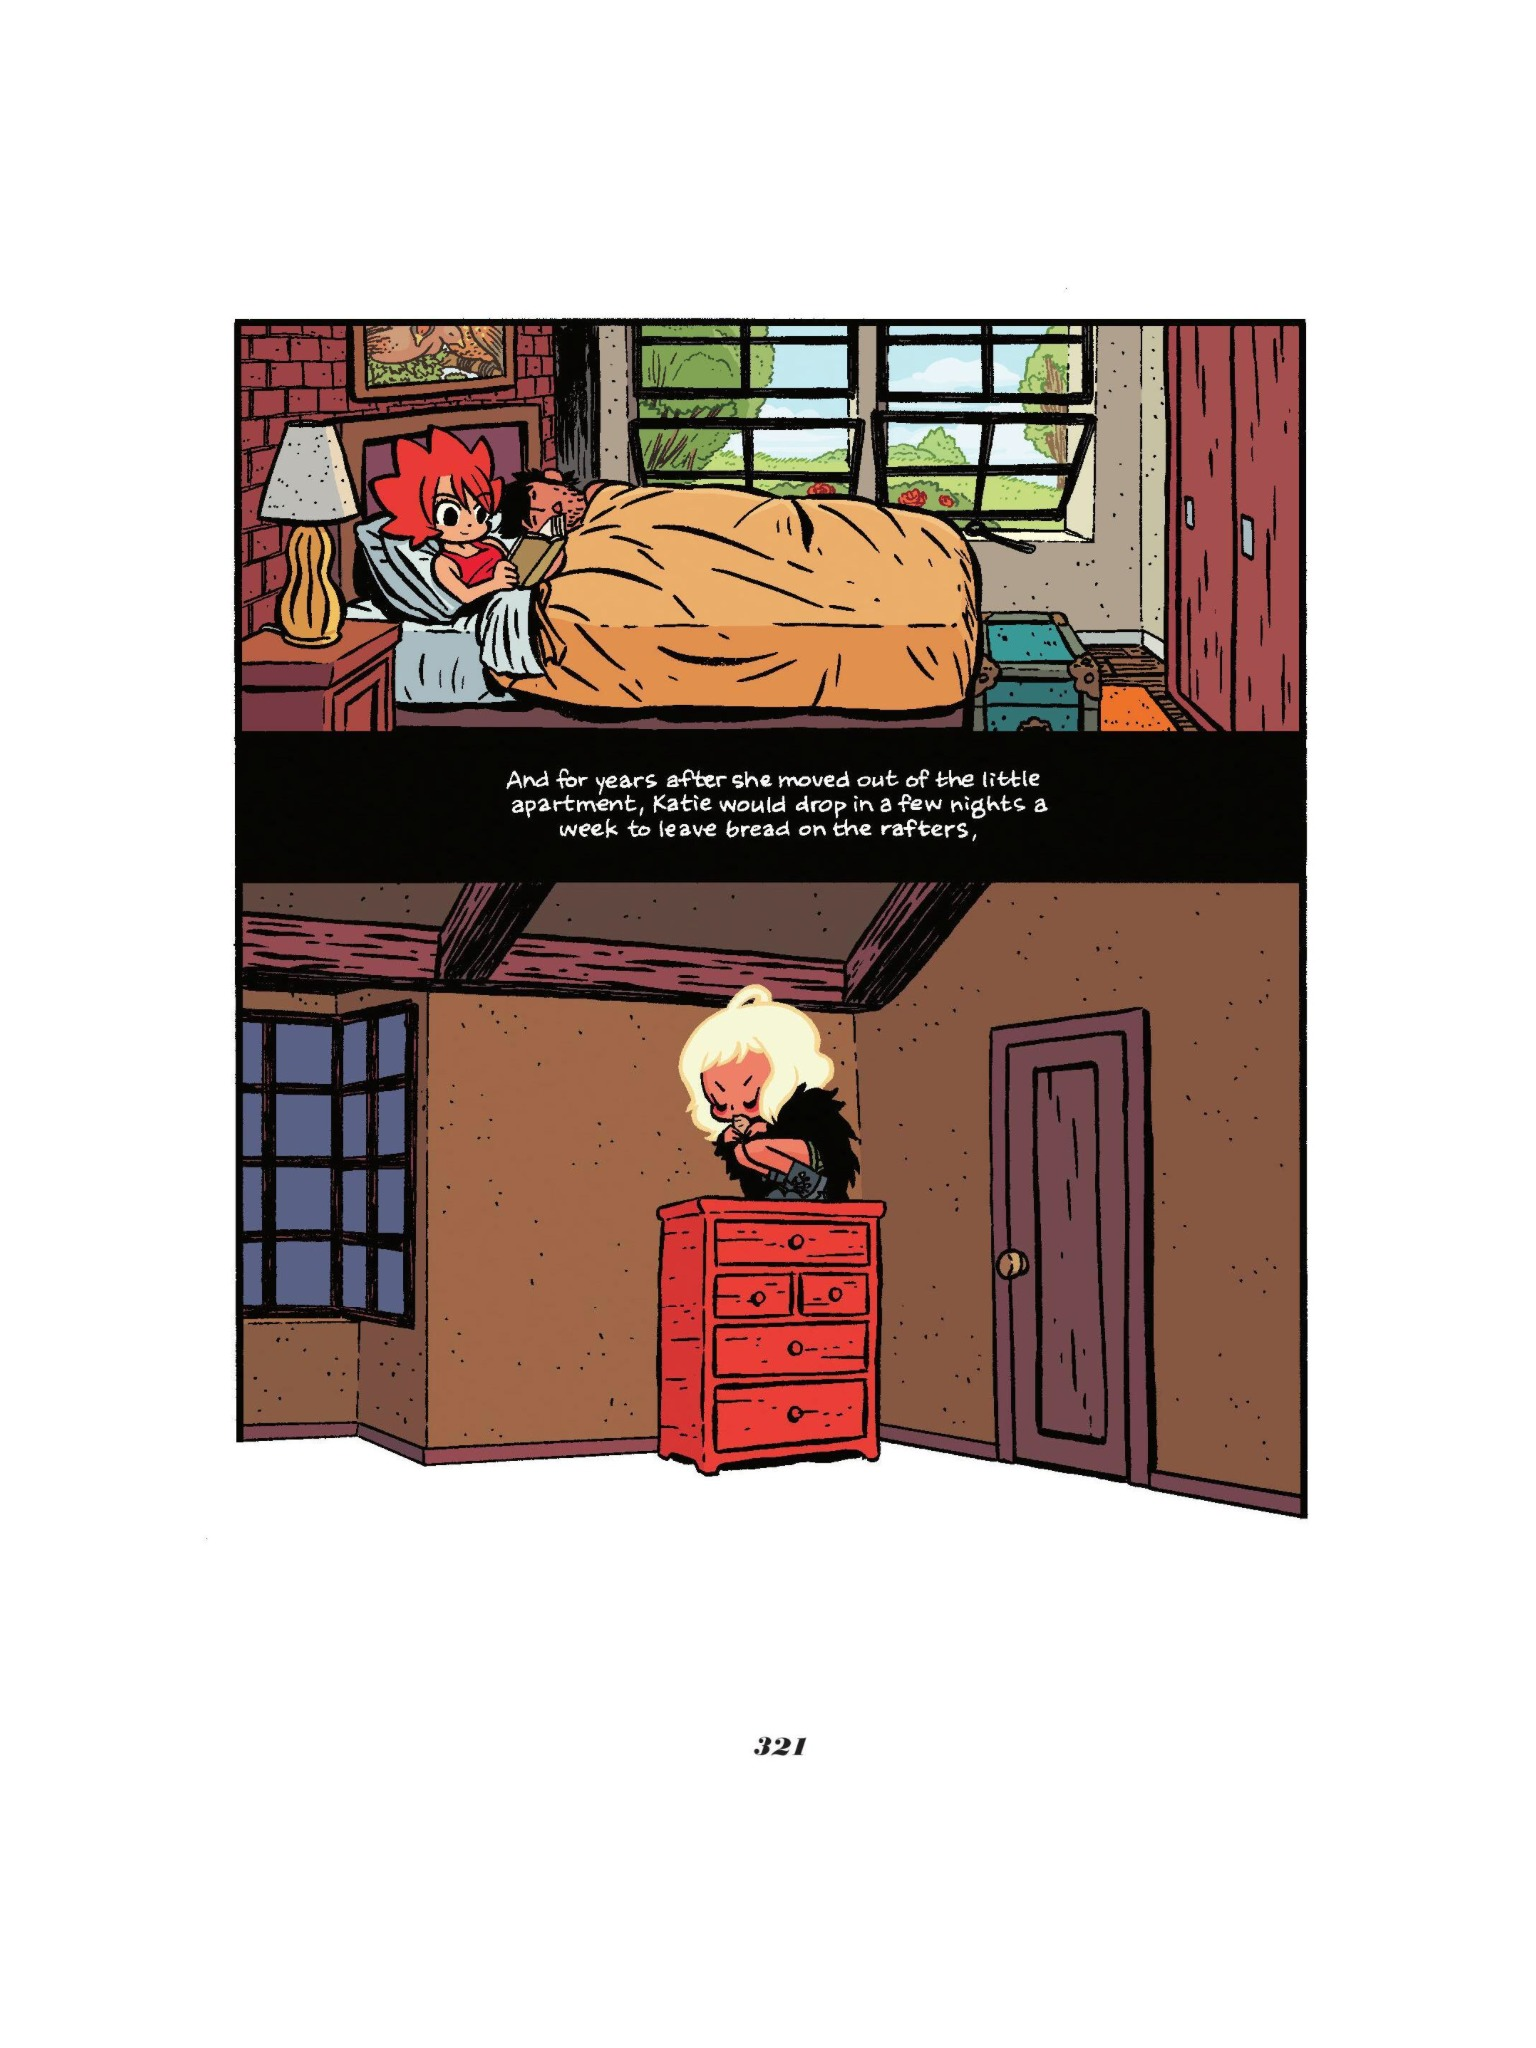 Read online Seconds comic -  Issue # Full - 321